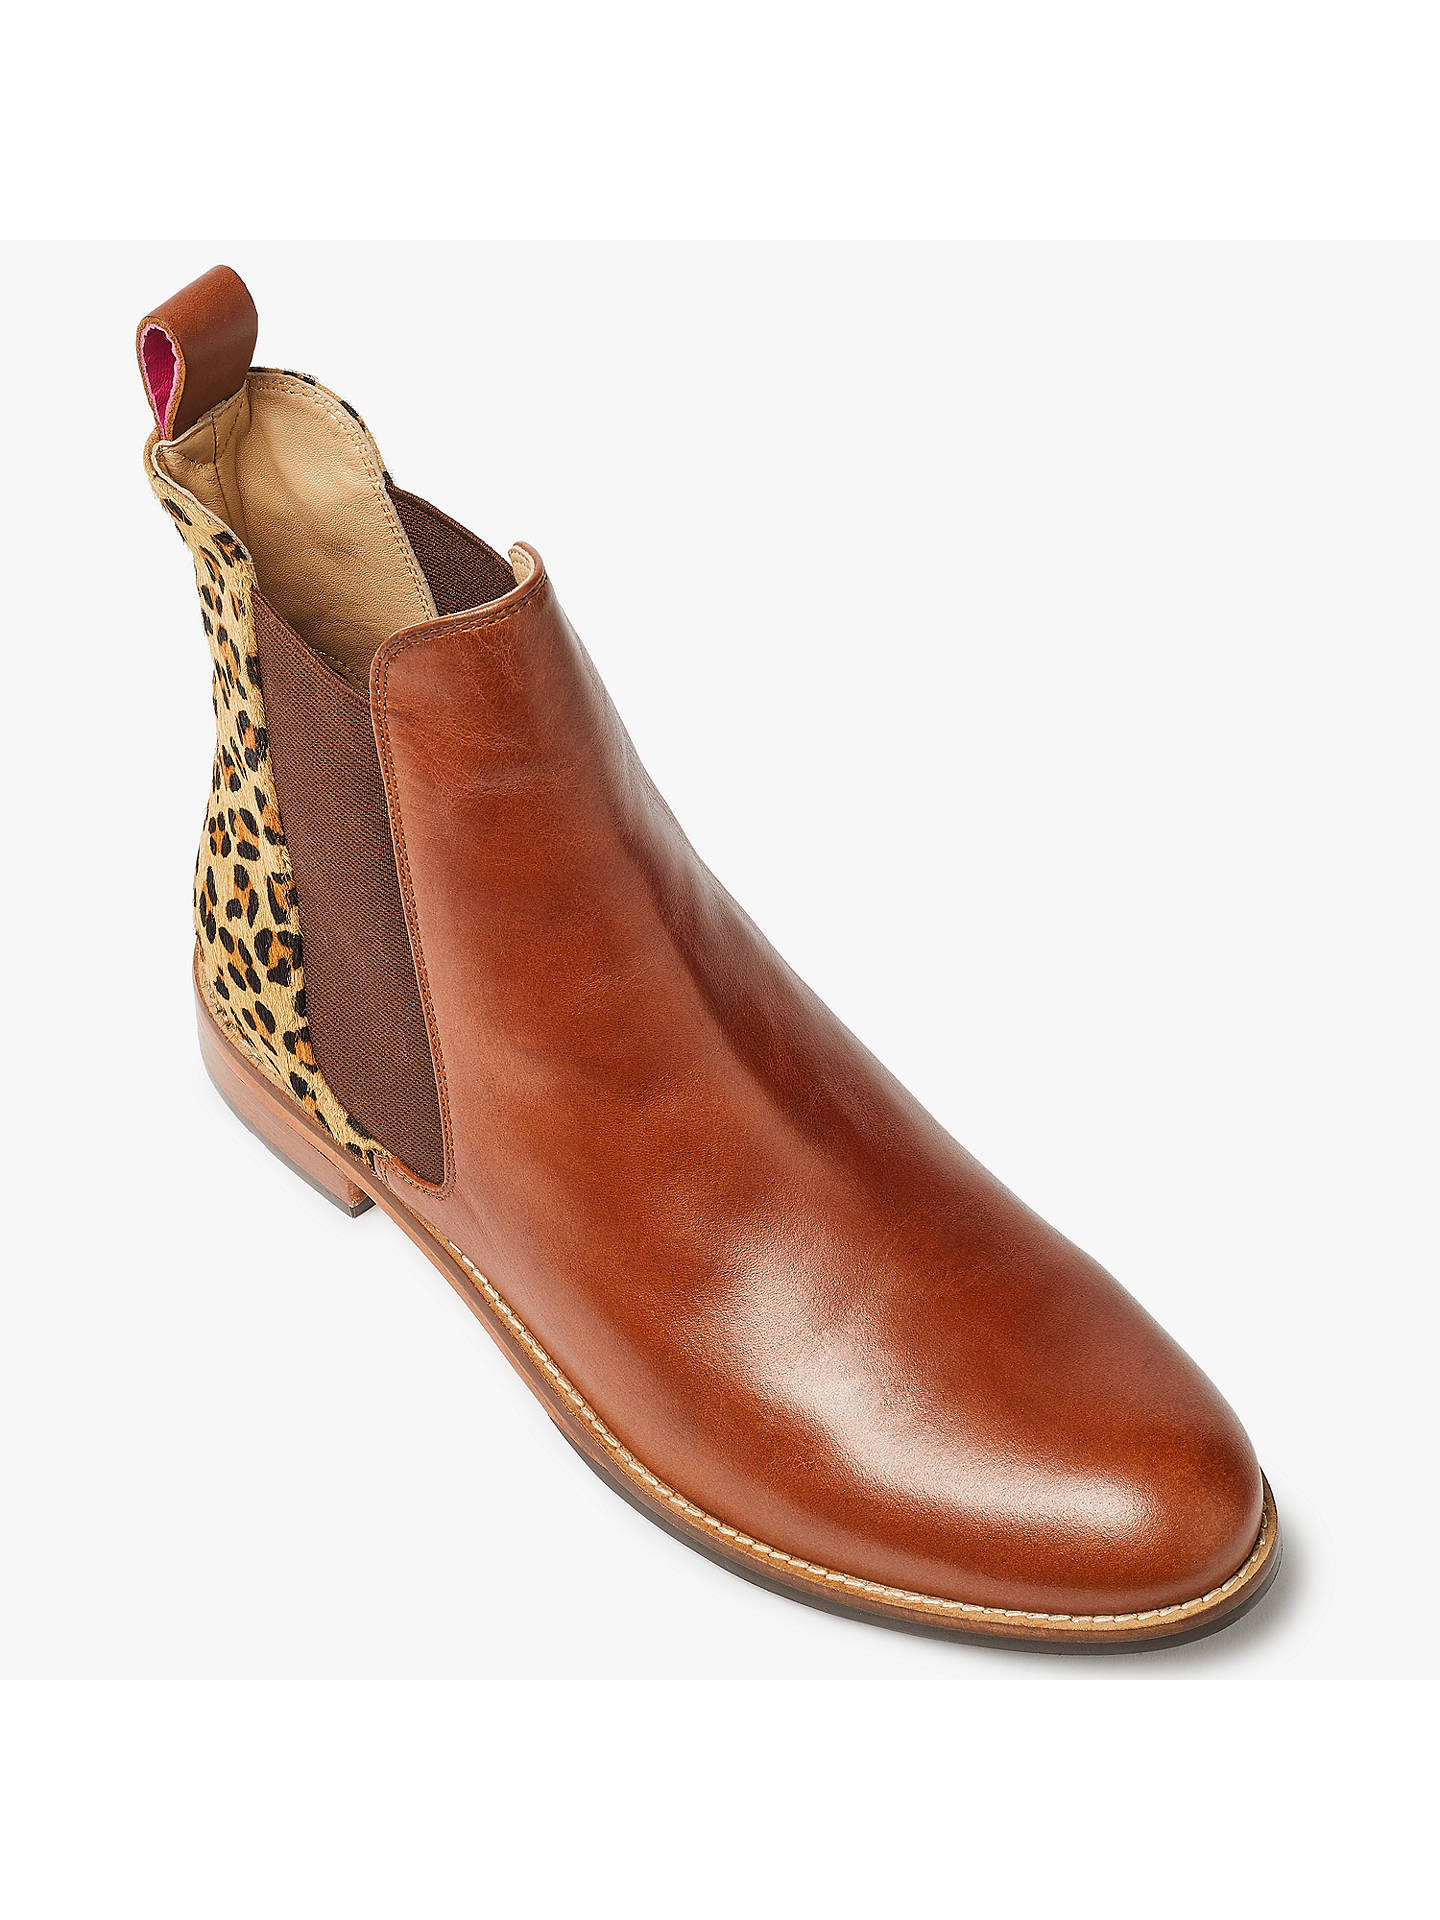 57e58a8a5 ... Buy Joules Westbourne Leather Chelsea Boots, Leopard, 3 Online at  johnlewis.com